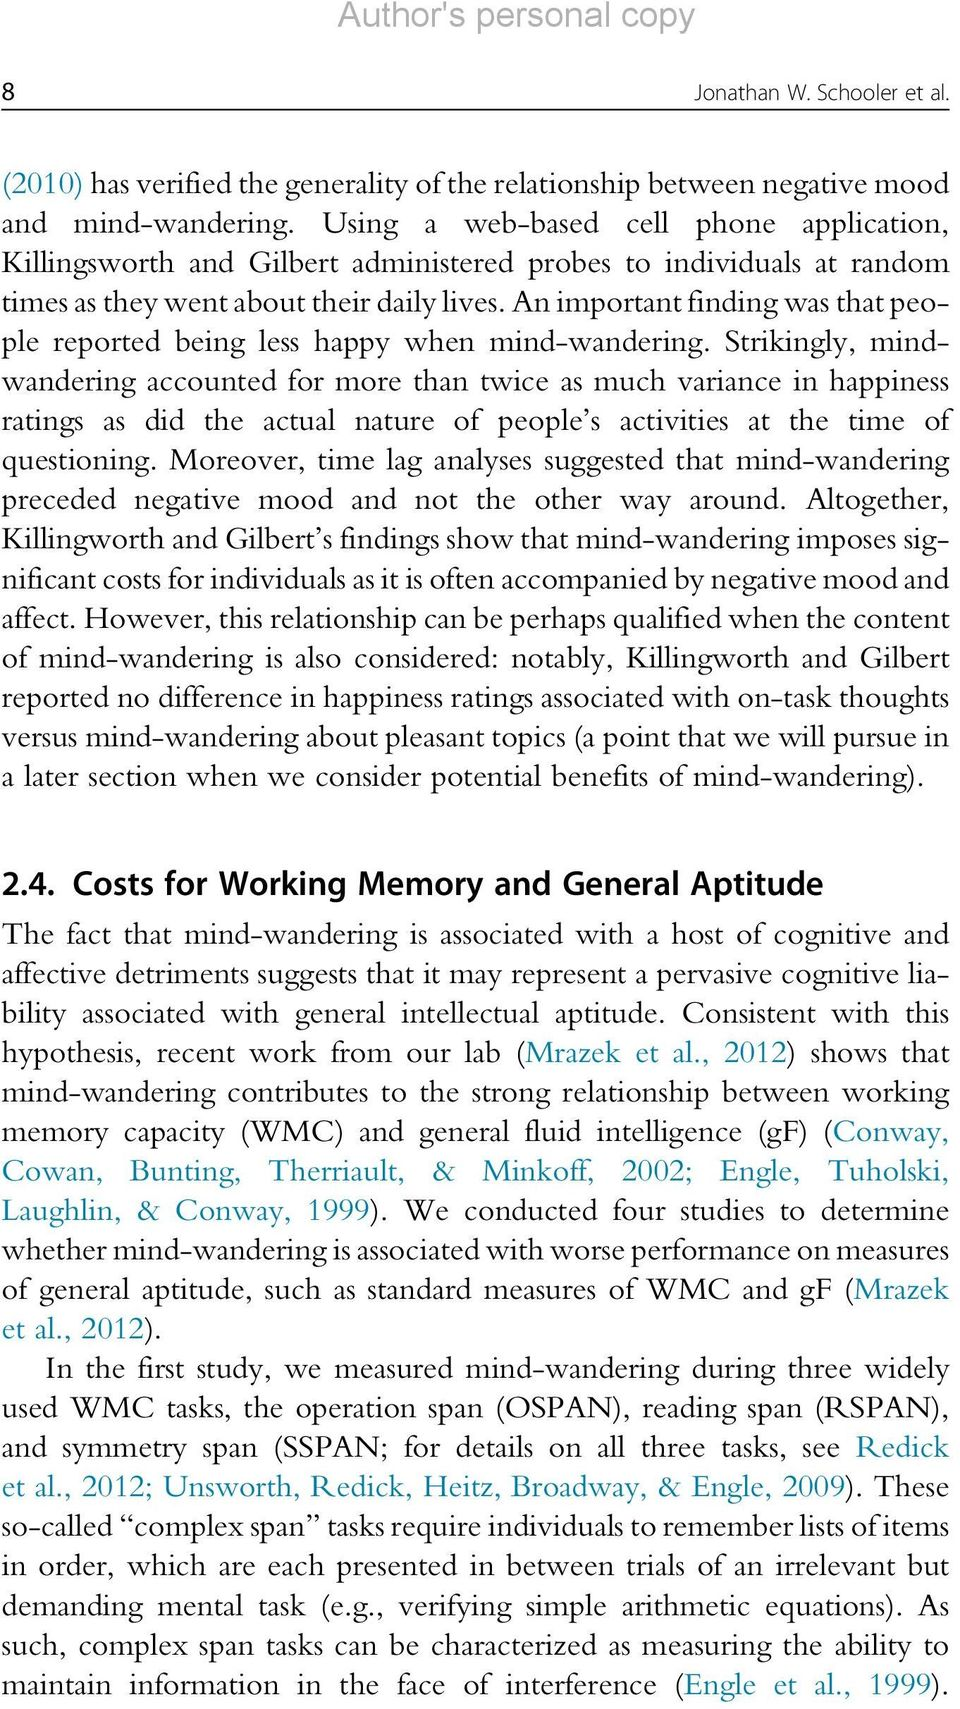 An important finding was that people reported being less happy when mind-wandering.